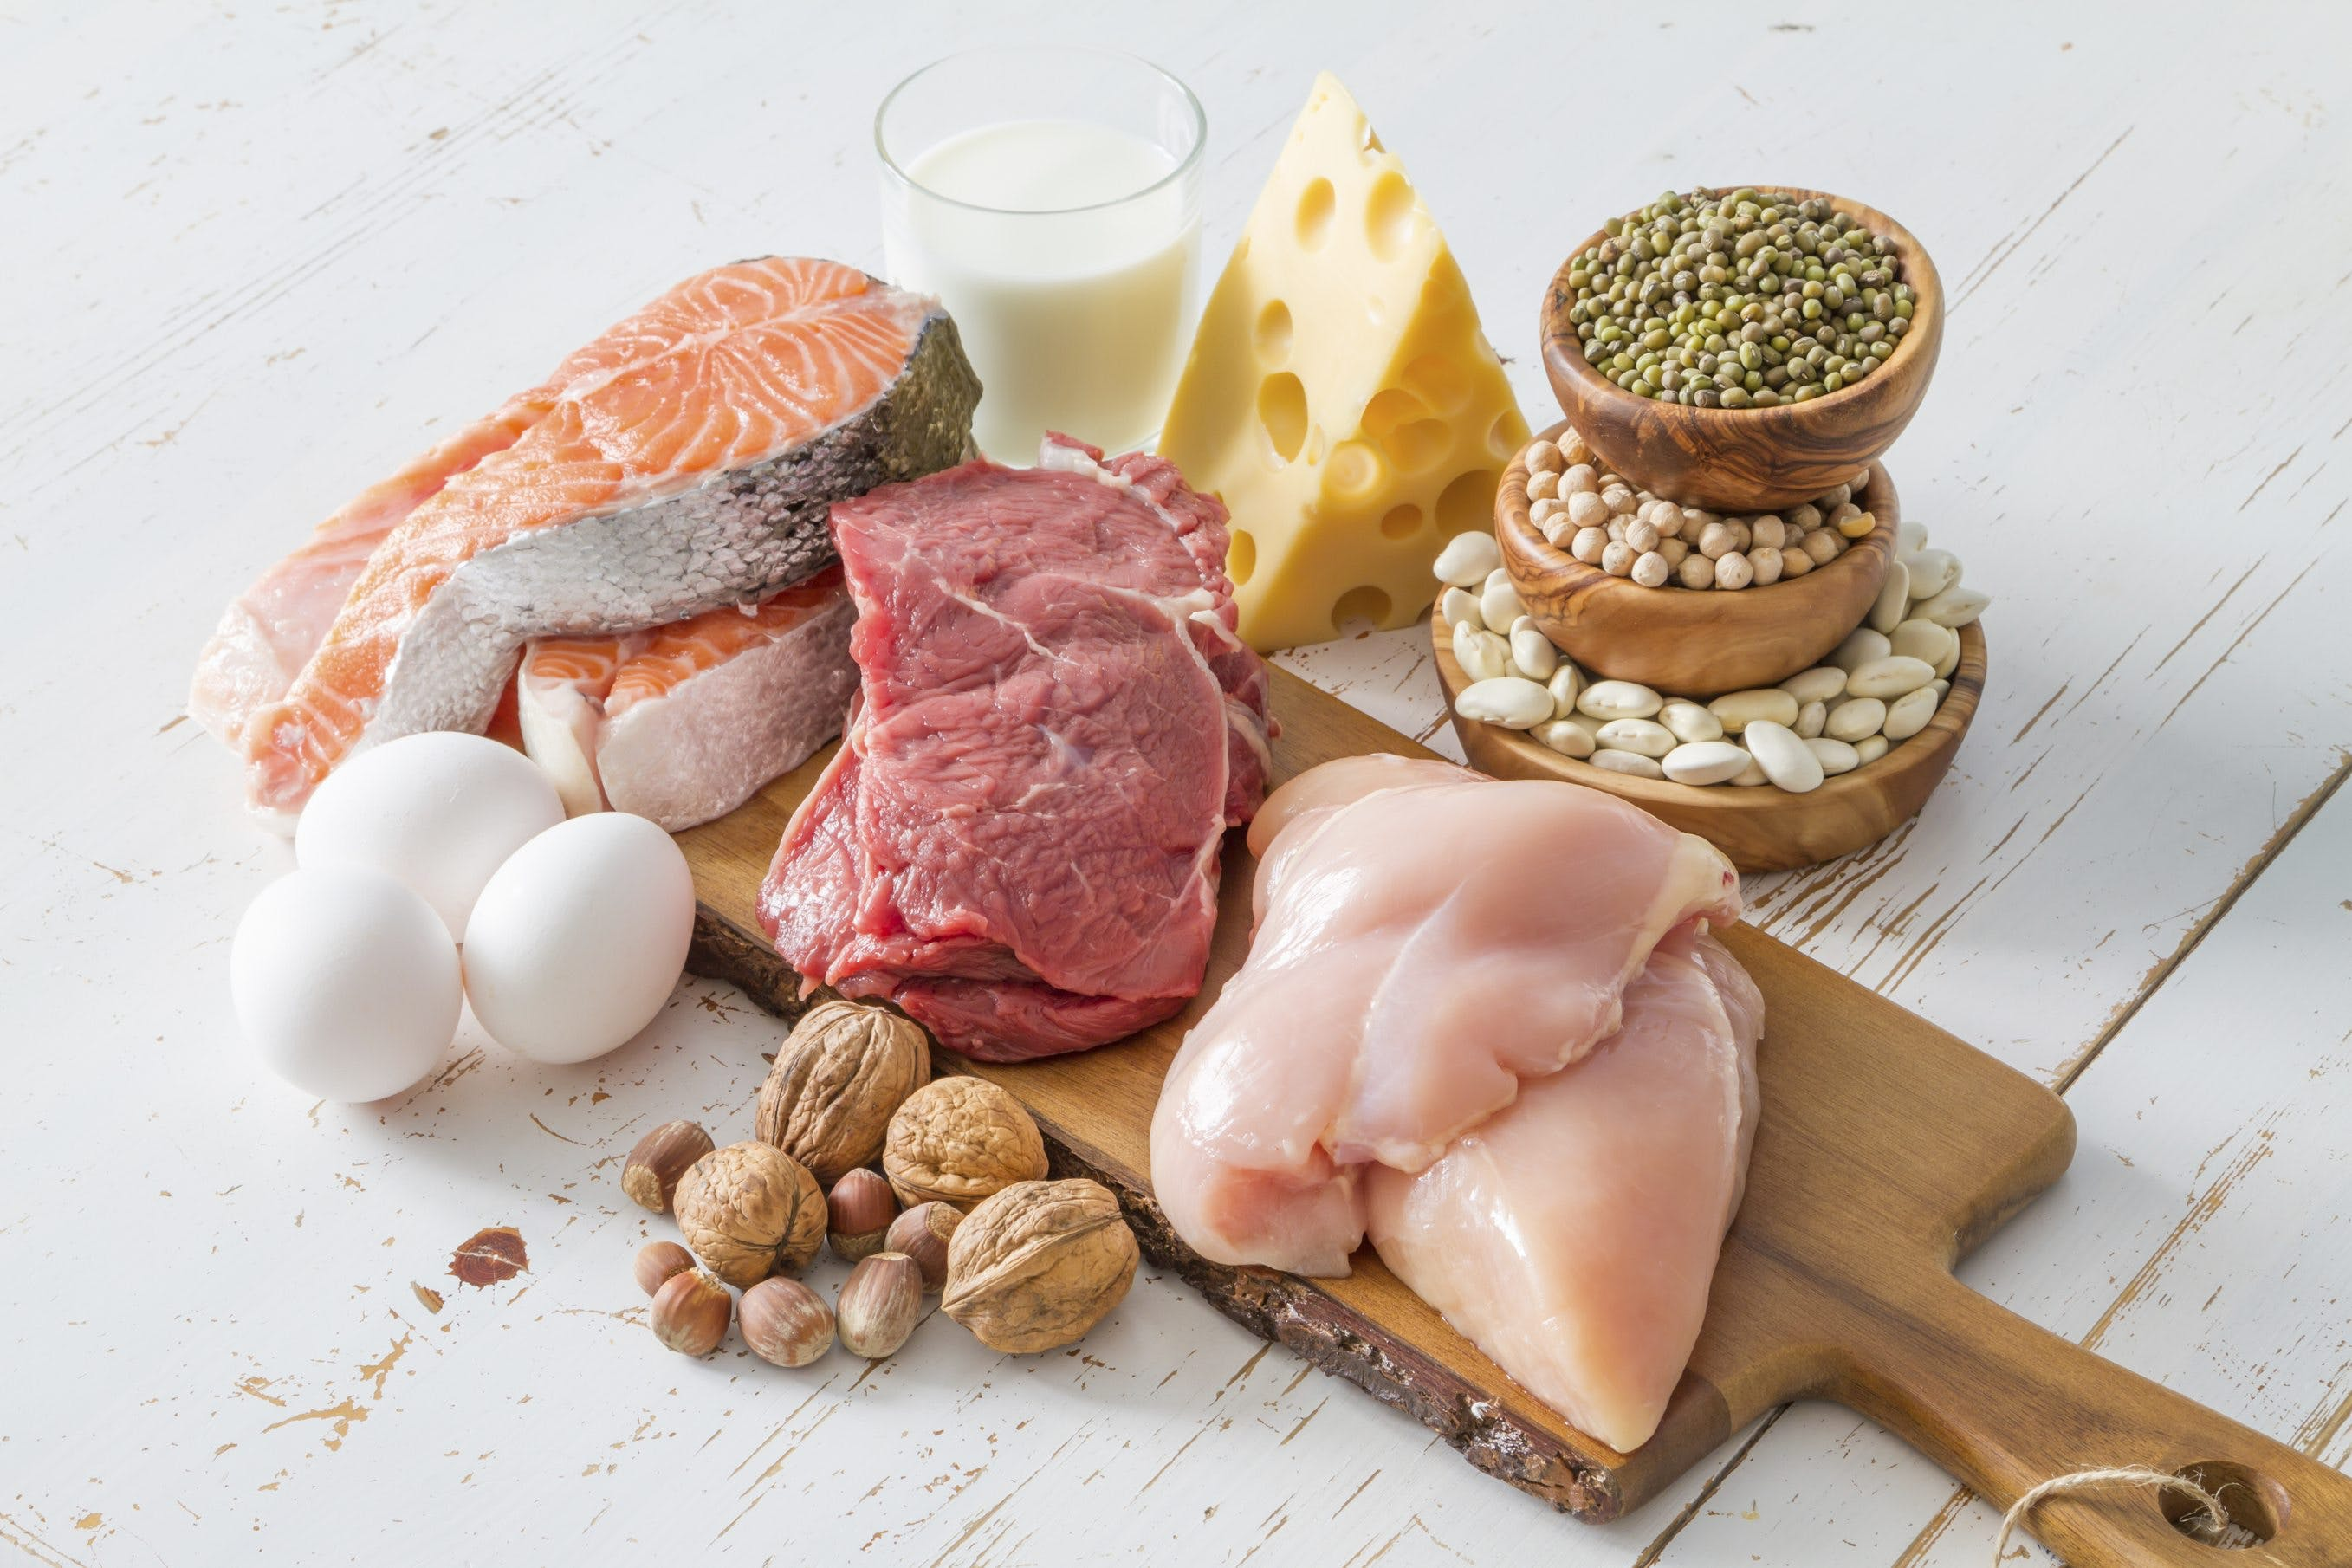 Why an orthopedic surgeon recommends an LCHF Diet